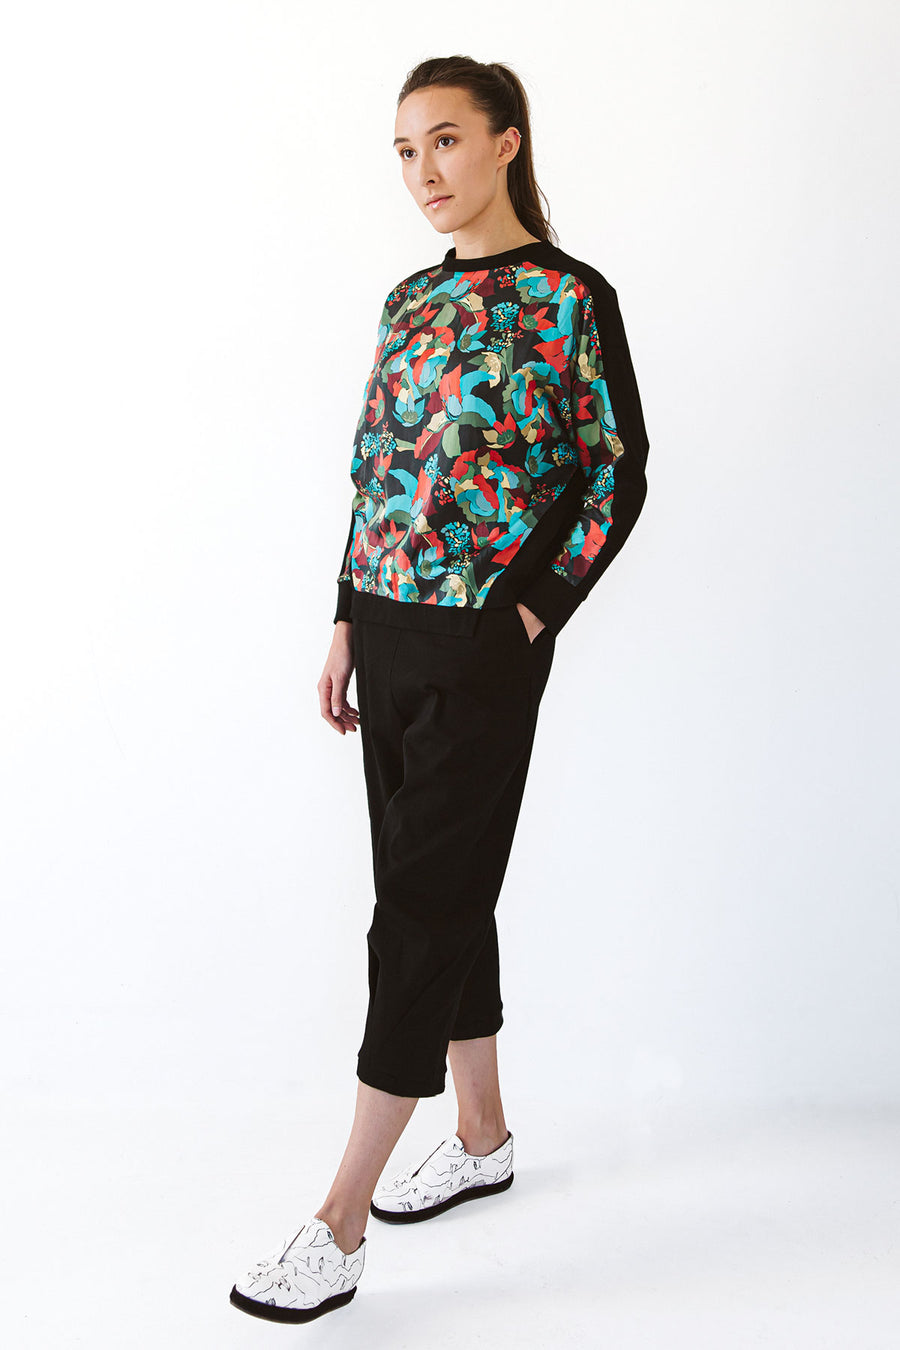 Designer sweater with colorful silk pattern